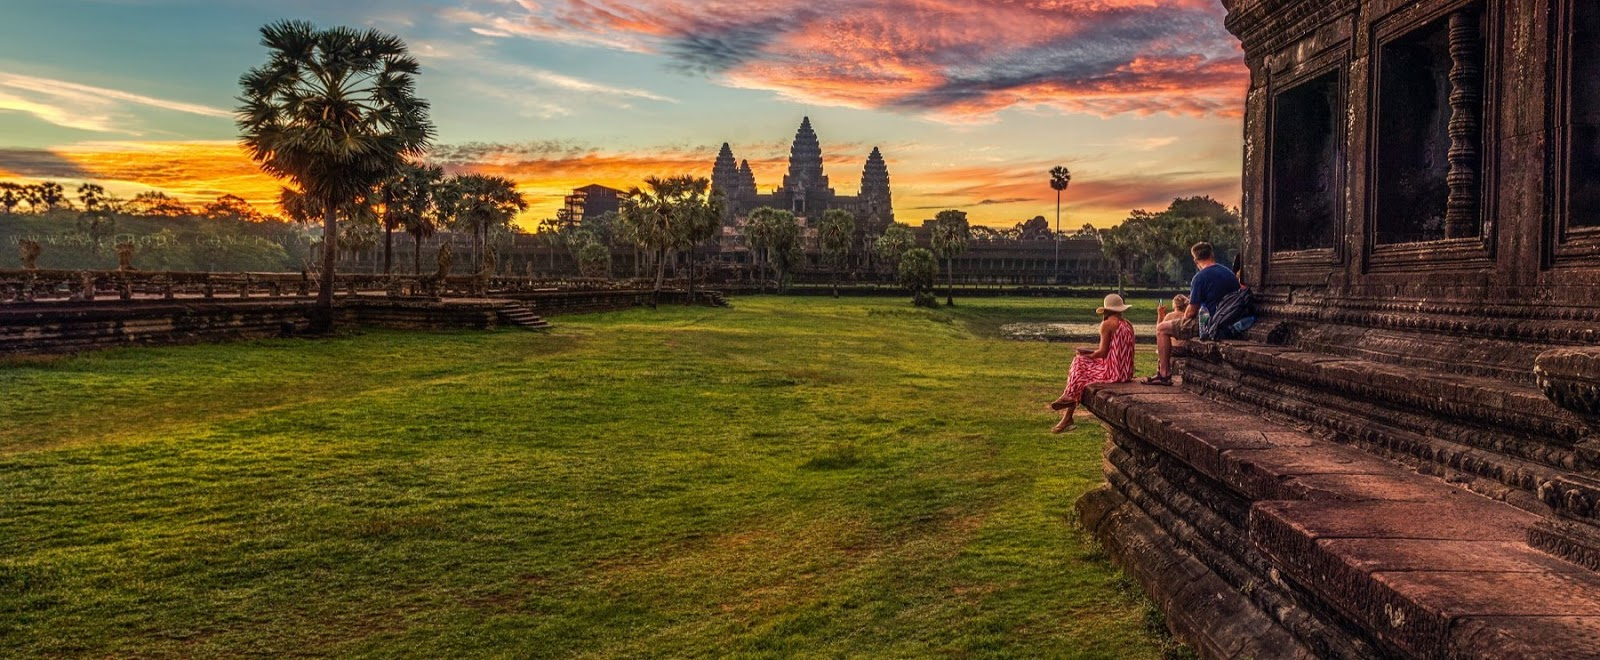 5 reasons to visit Angkor Wat temples in Cambodia